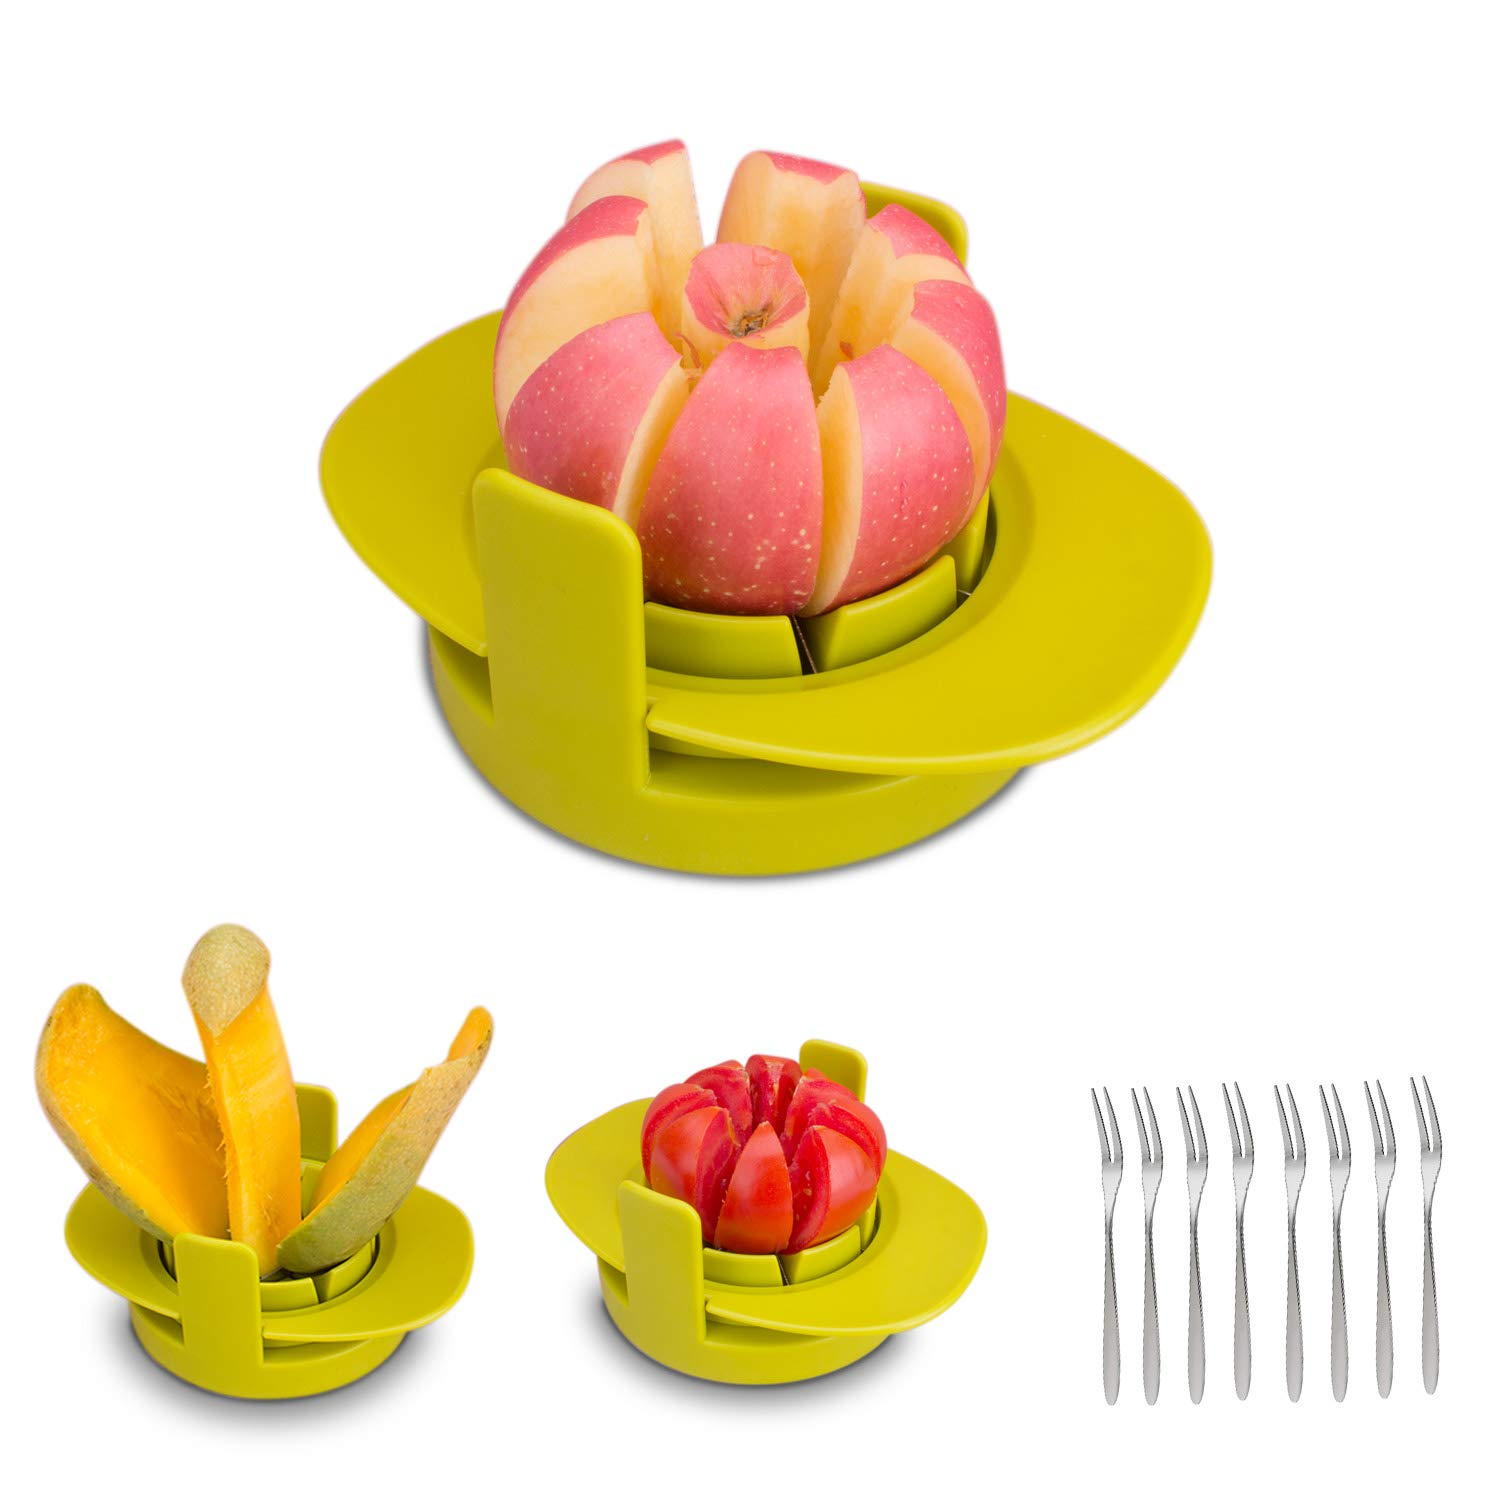 GIPTIME 4-in-1 Apple Pear Mango Tomato Guava Orange Pitaya Fruit Vegetables Slicer Corer Cutter with Common Base, Dishwasher Safe Practical Fruit Tools, 8 Fruit Forks as Bonus